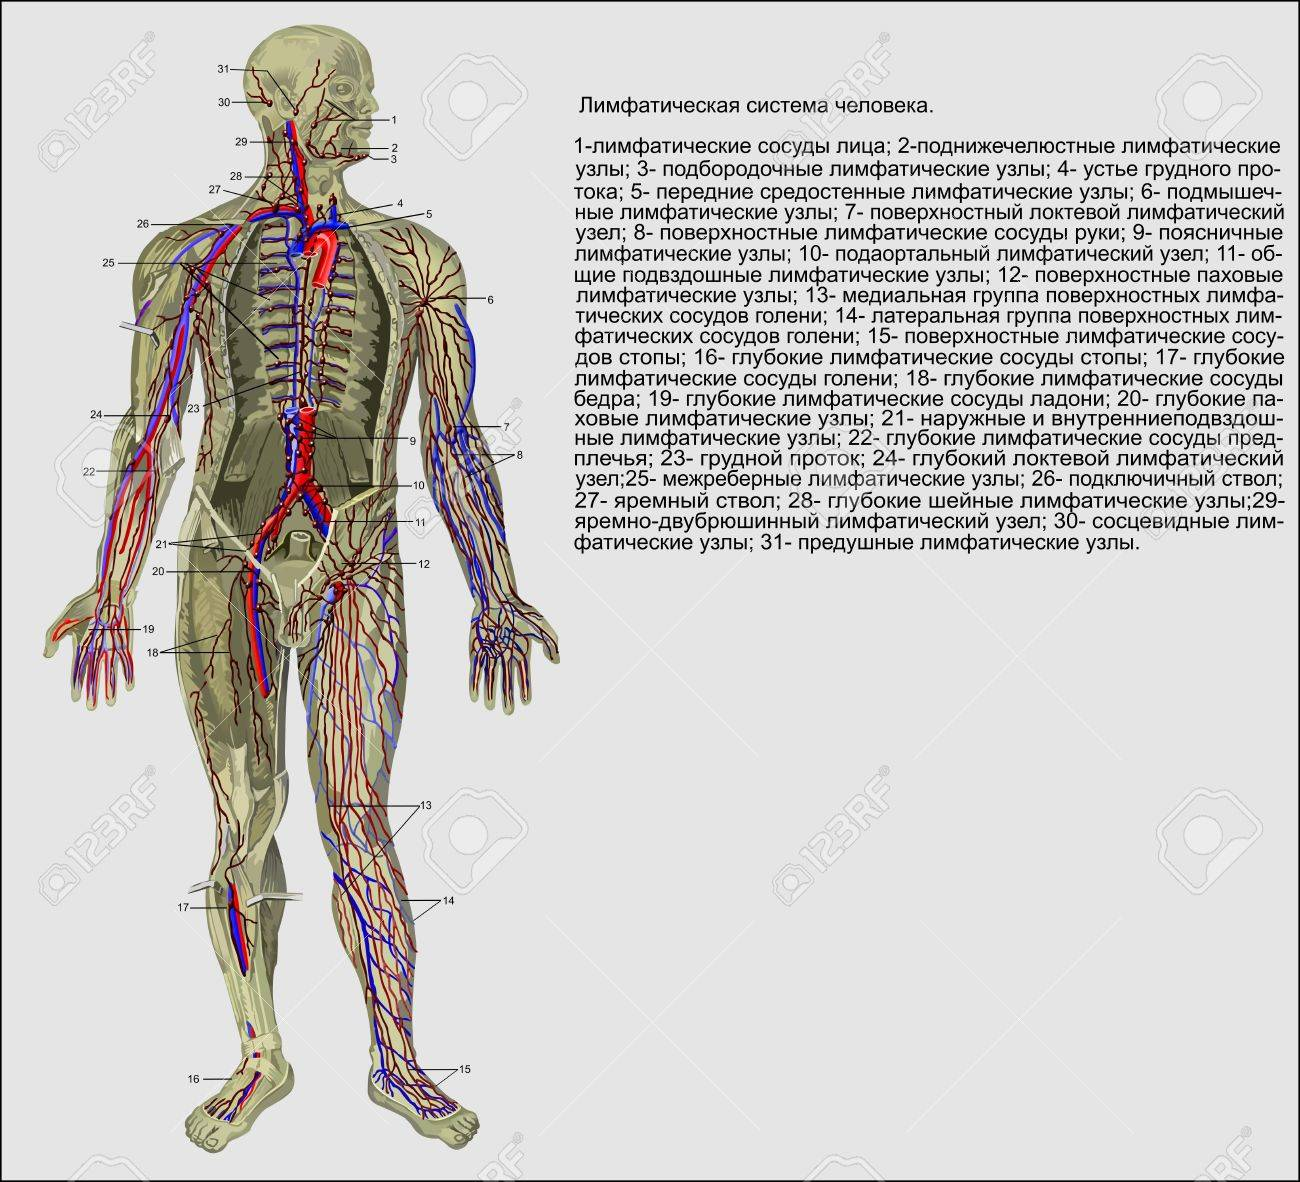 Human Anatomy The Lymphatic System Of The Person Stock Photo